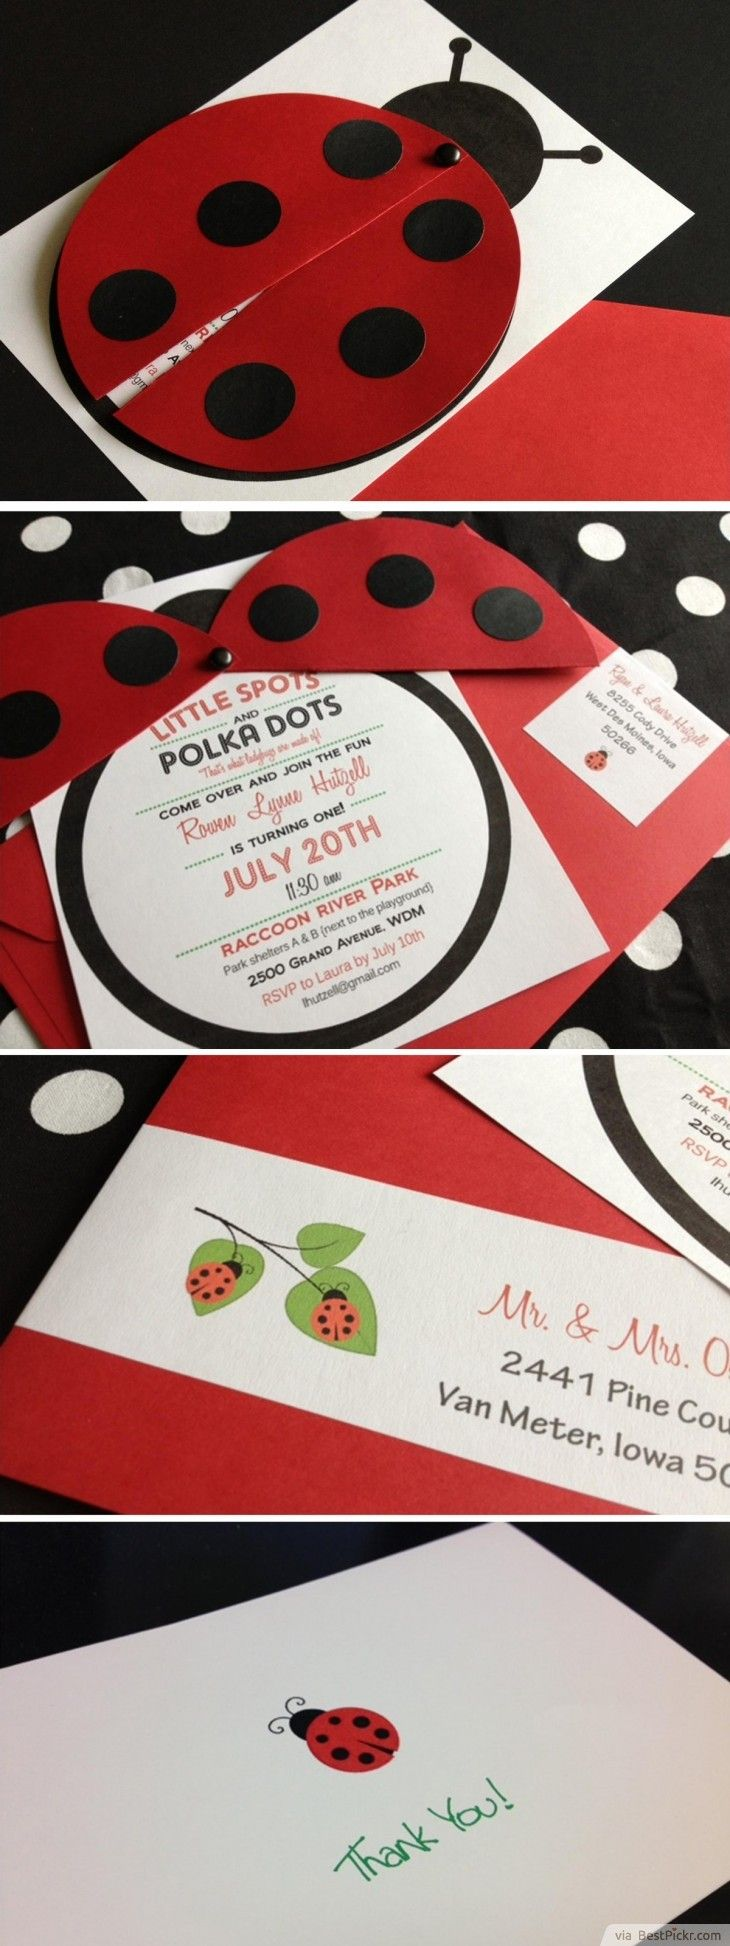 unique homemade baby shower invitation ideas%0A    Unique Ladybug Baby Shower Invitations Your Guests Will Remember